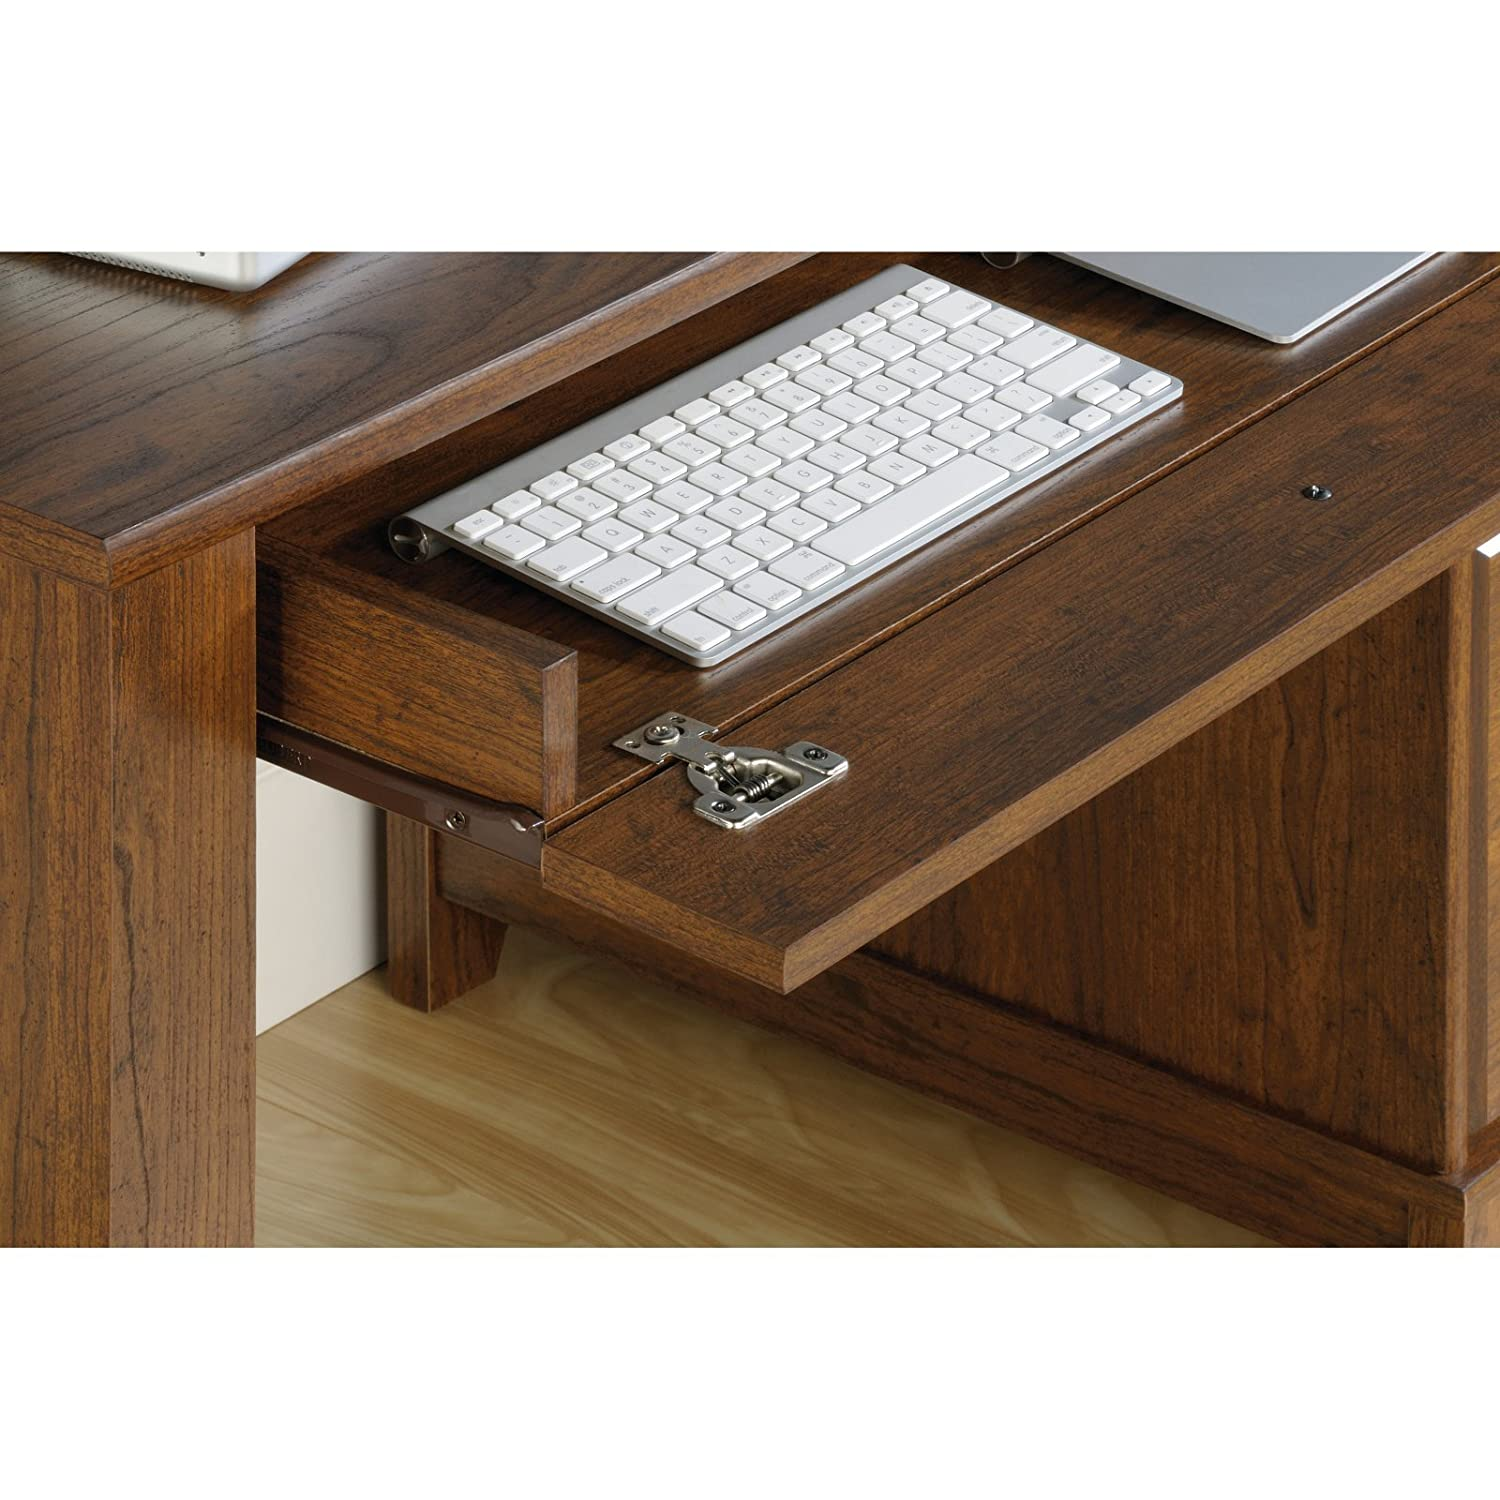 Amazon Sauder Camarin puter Desk in Jamocha Wood fice